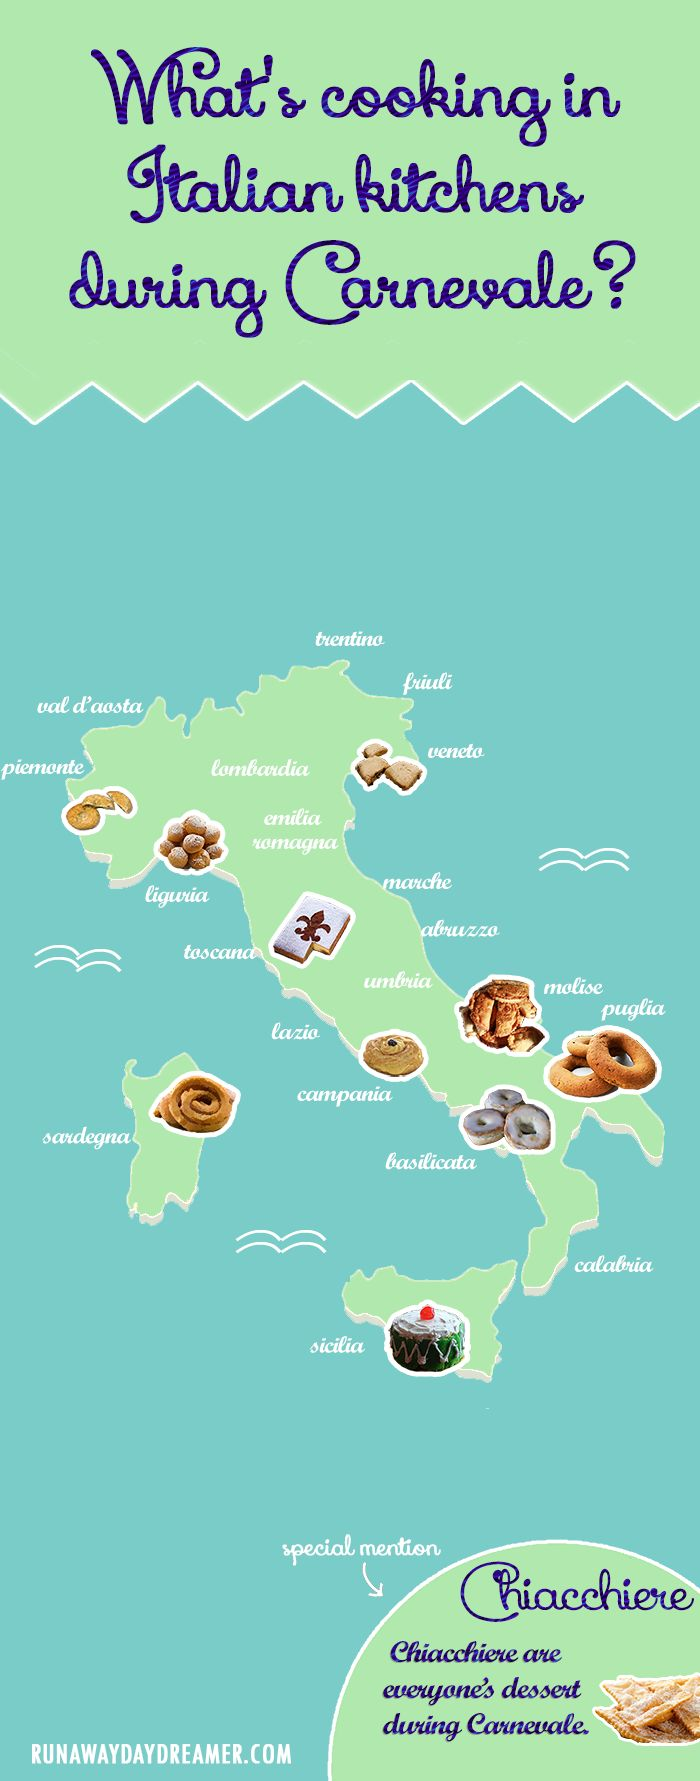 Specialità di Carnevale: Carnival Specialities from Different Regions of Italy